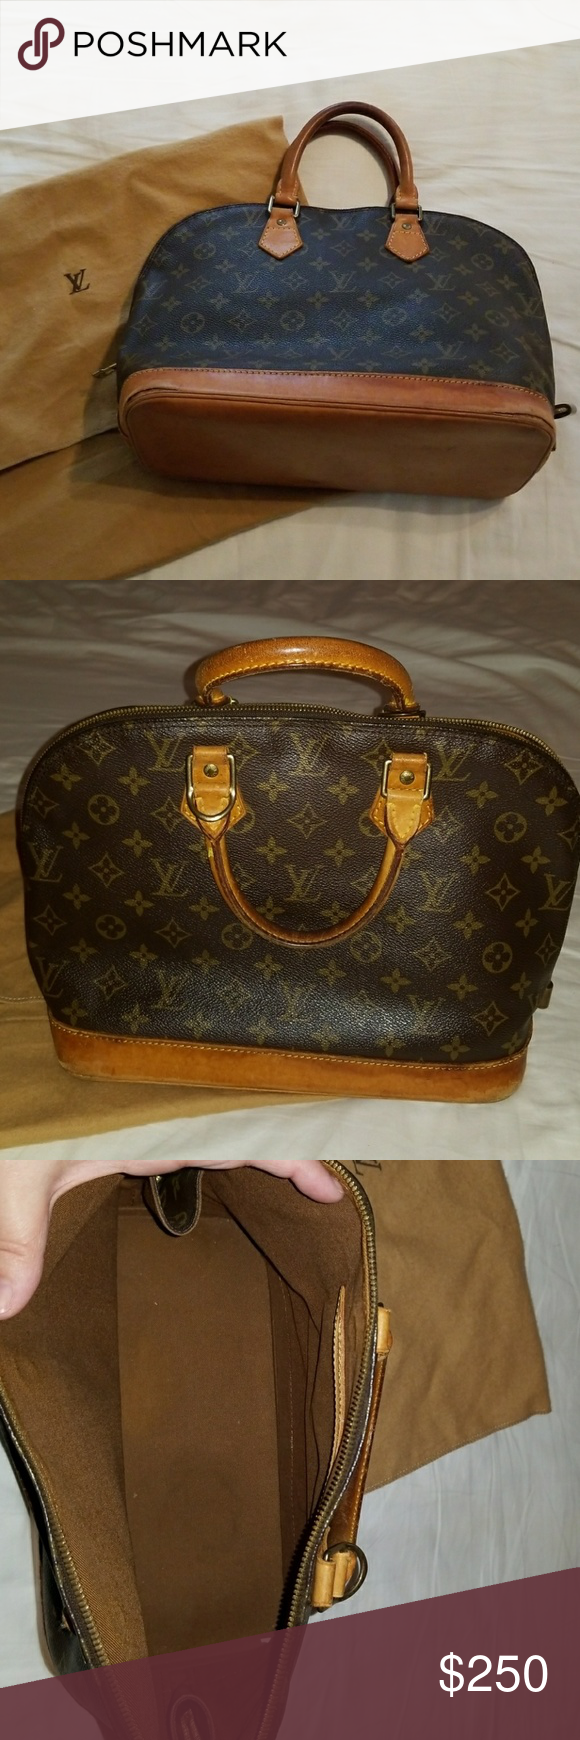 Louis Vuitton Alma Mm Louis Vuitton Alma Louis Vuitton Louis Vuitton Bag